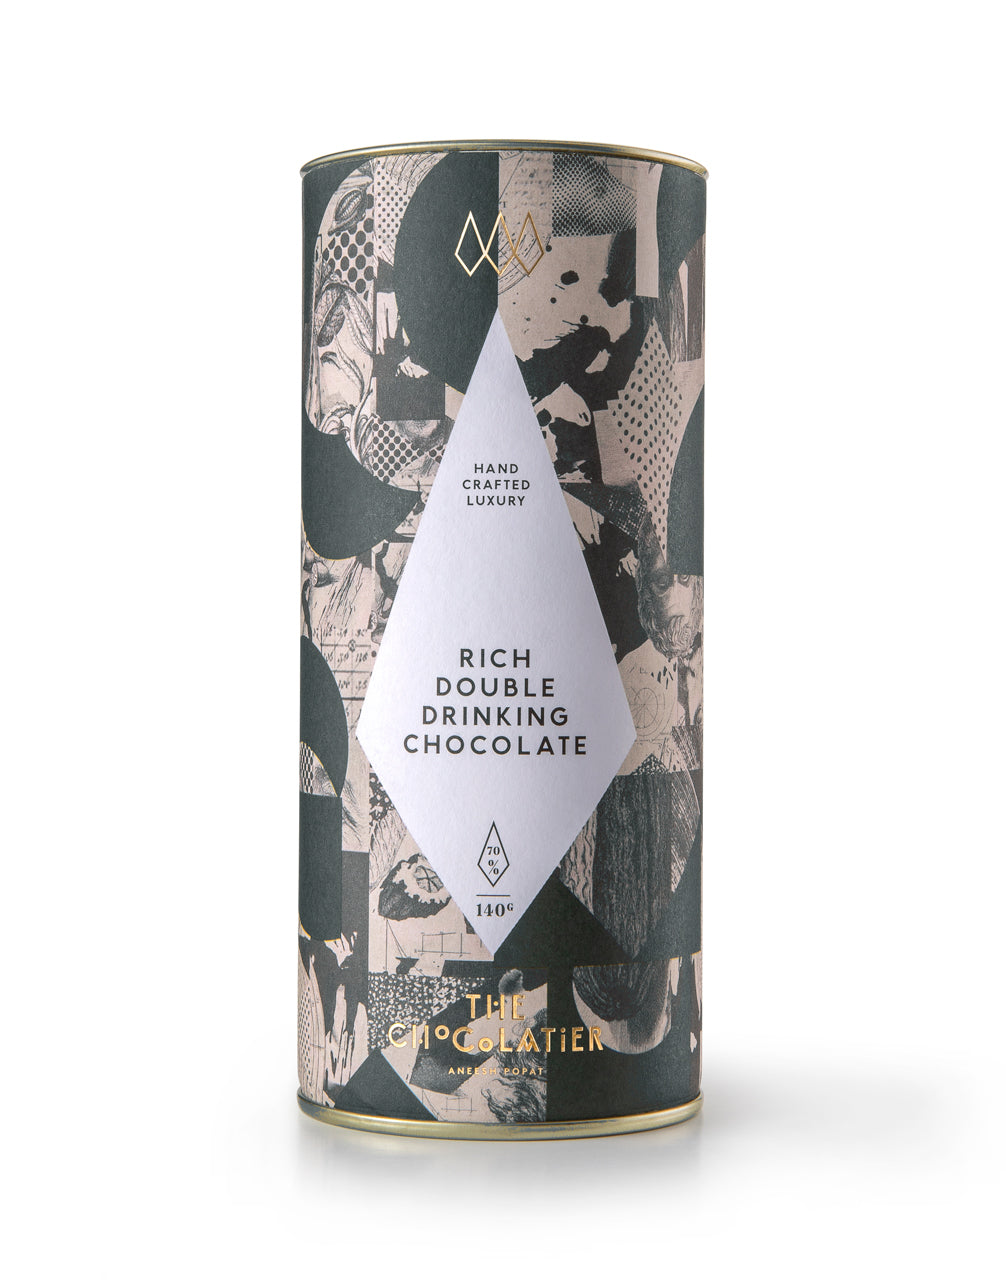 Rich Double Drinking Chocolate